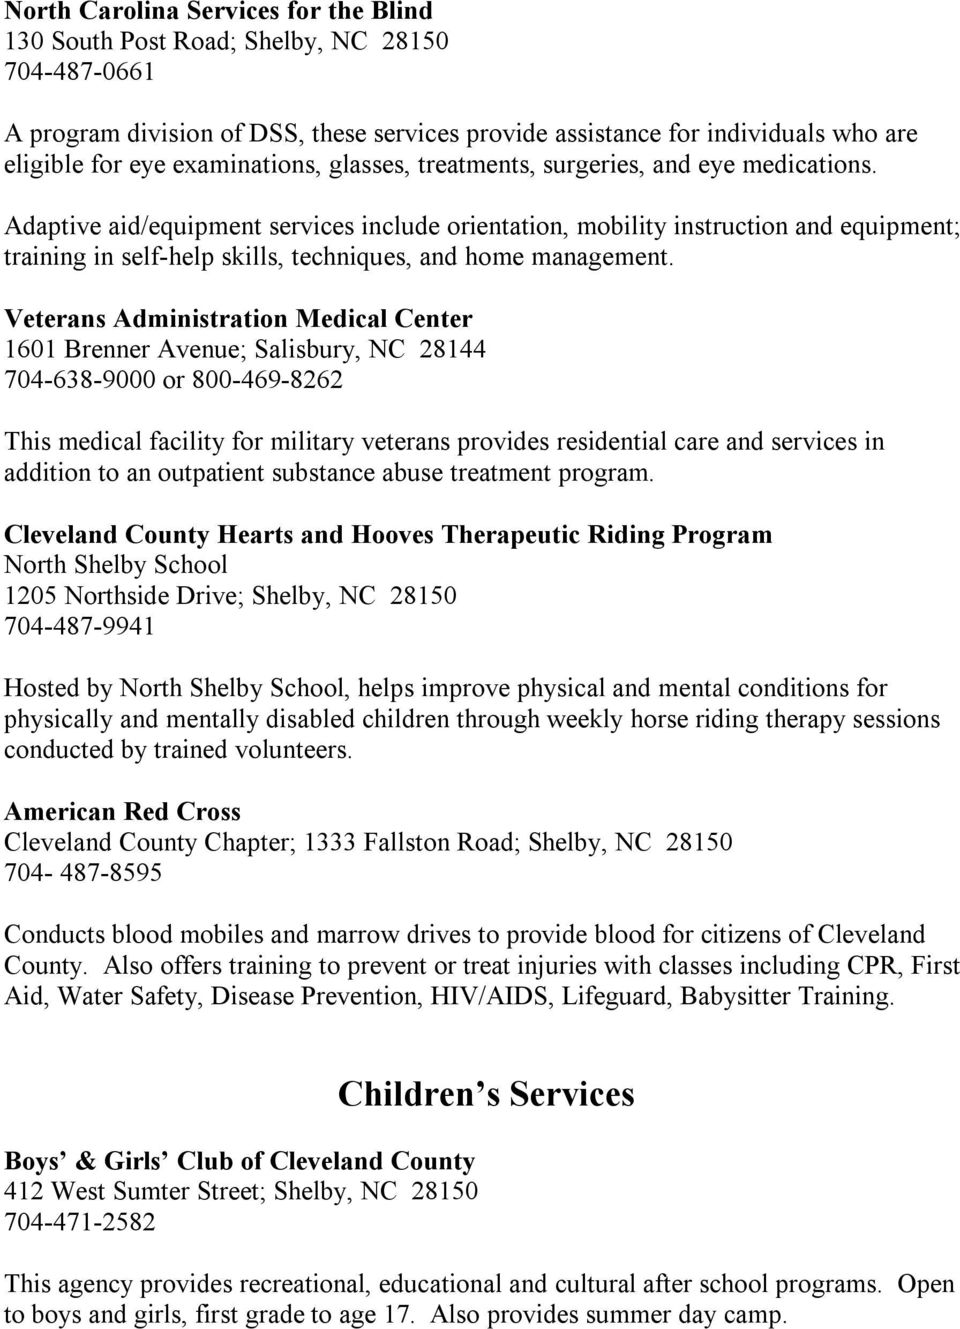 Community Resource Guide for Cleveland County - PDF